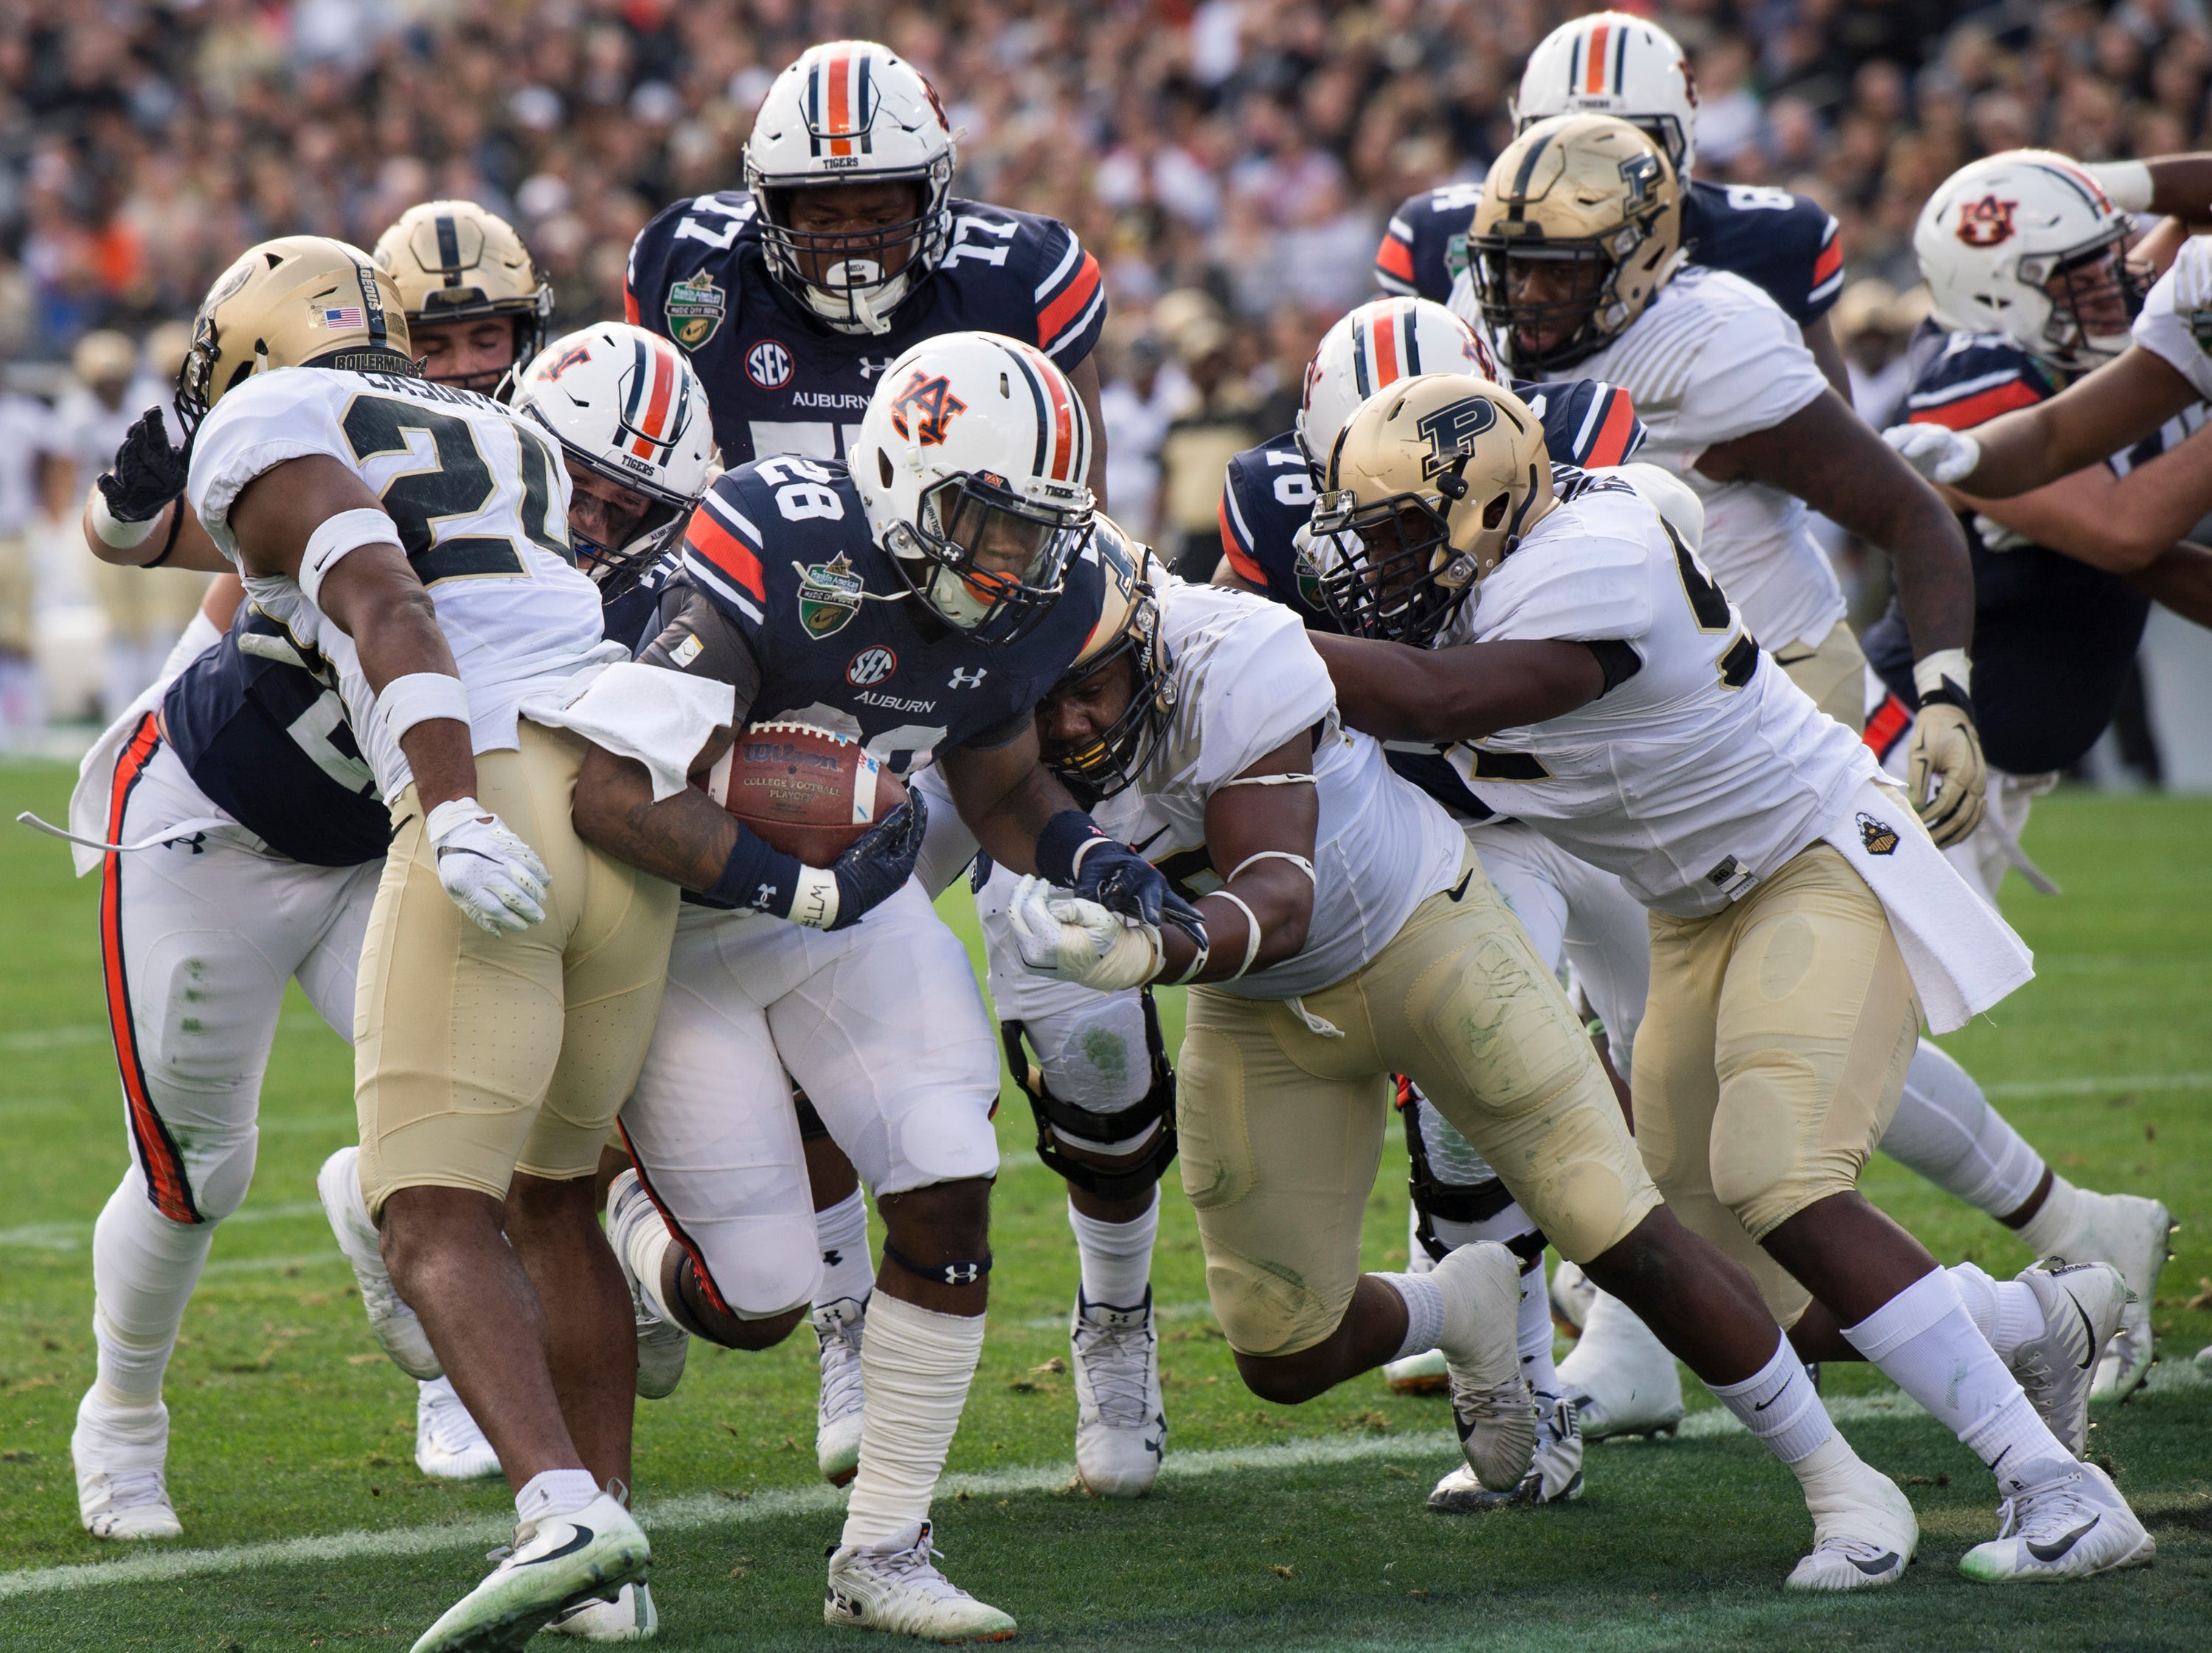 Auburn running back JaTarvious Whitlow (28) powers his way into the end zone for a touchdown during the Music City Bowl at Nissan Stadium in Nashville, Tenn., on Friday, Dec. 28, 2018. Auburn defeated Purdue 63-14.